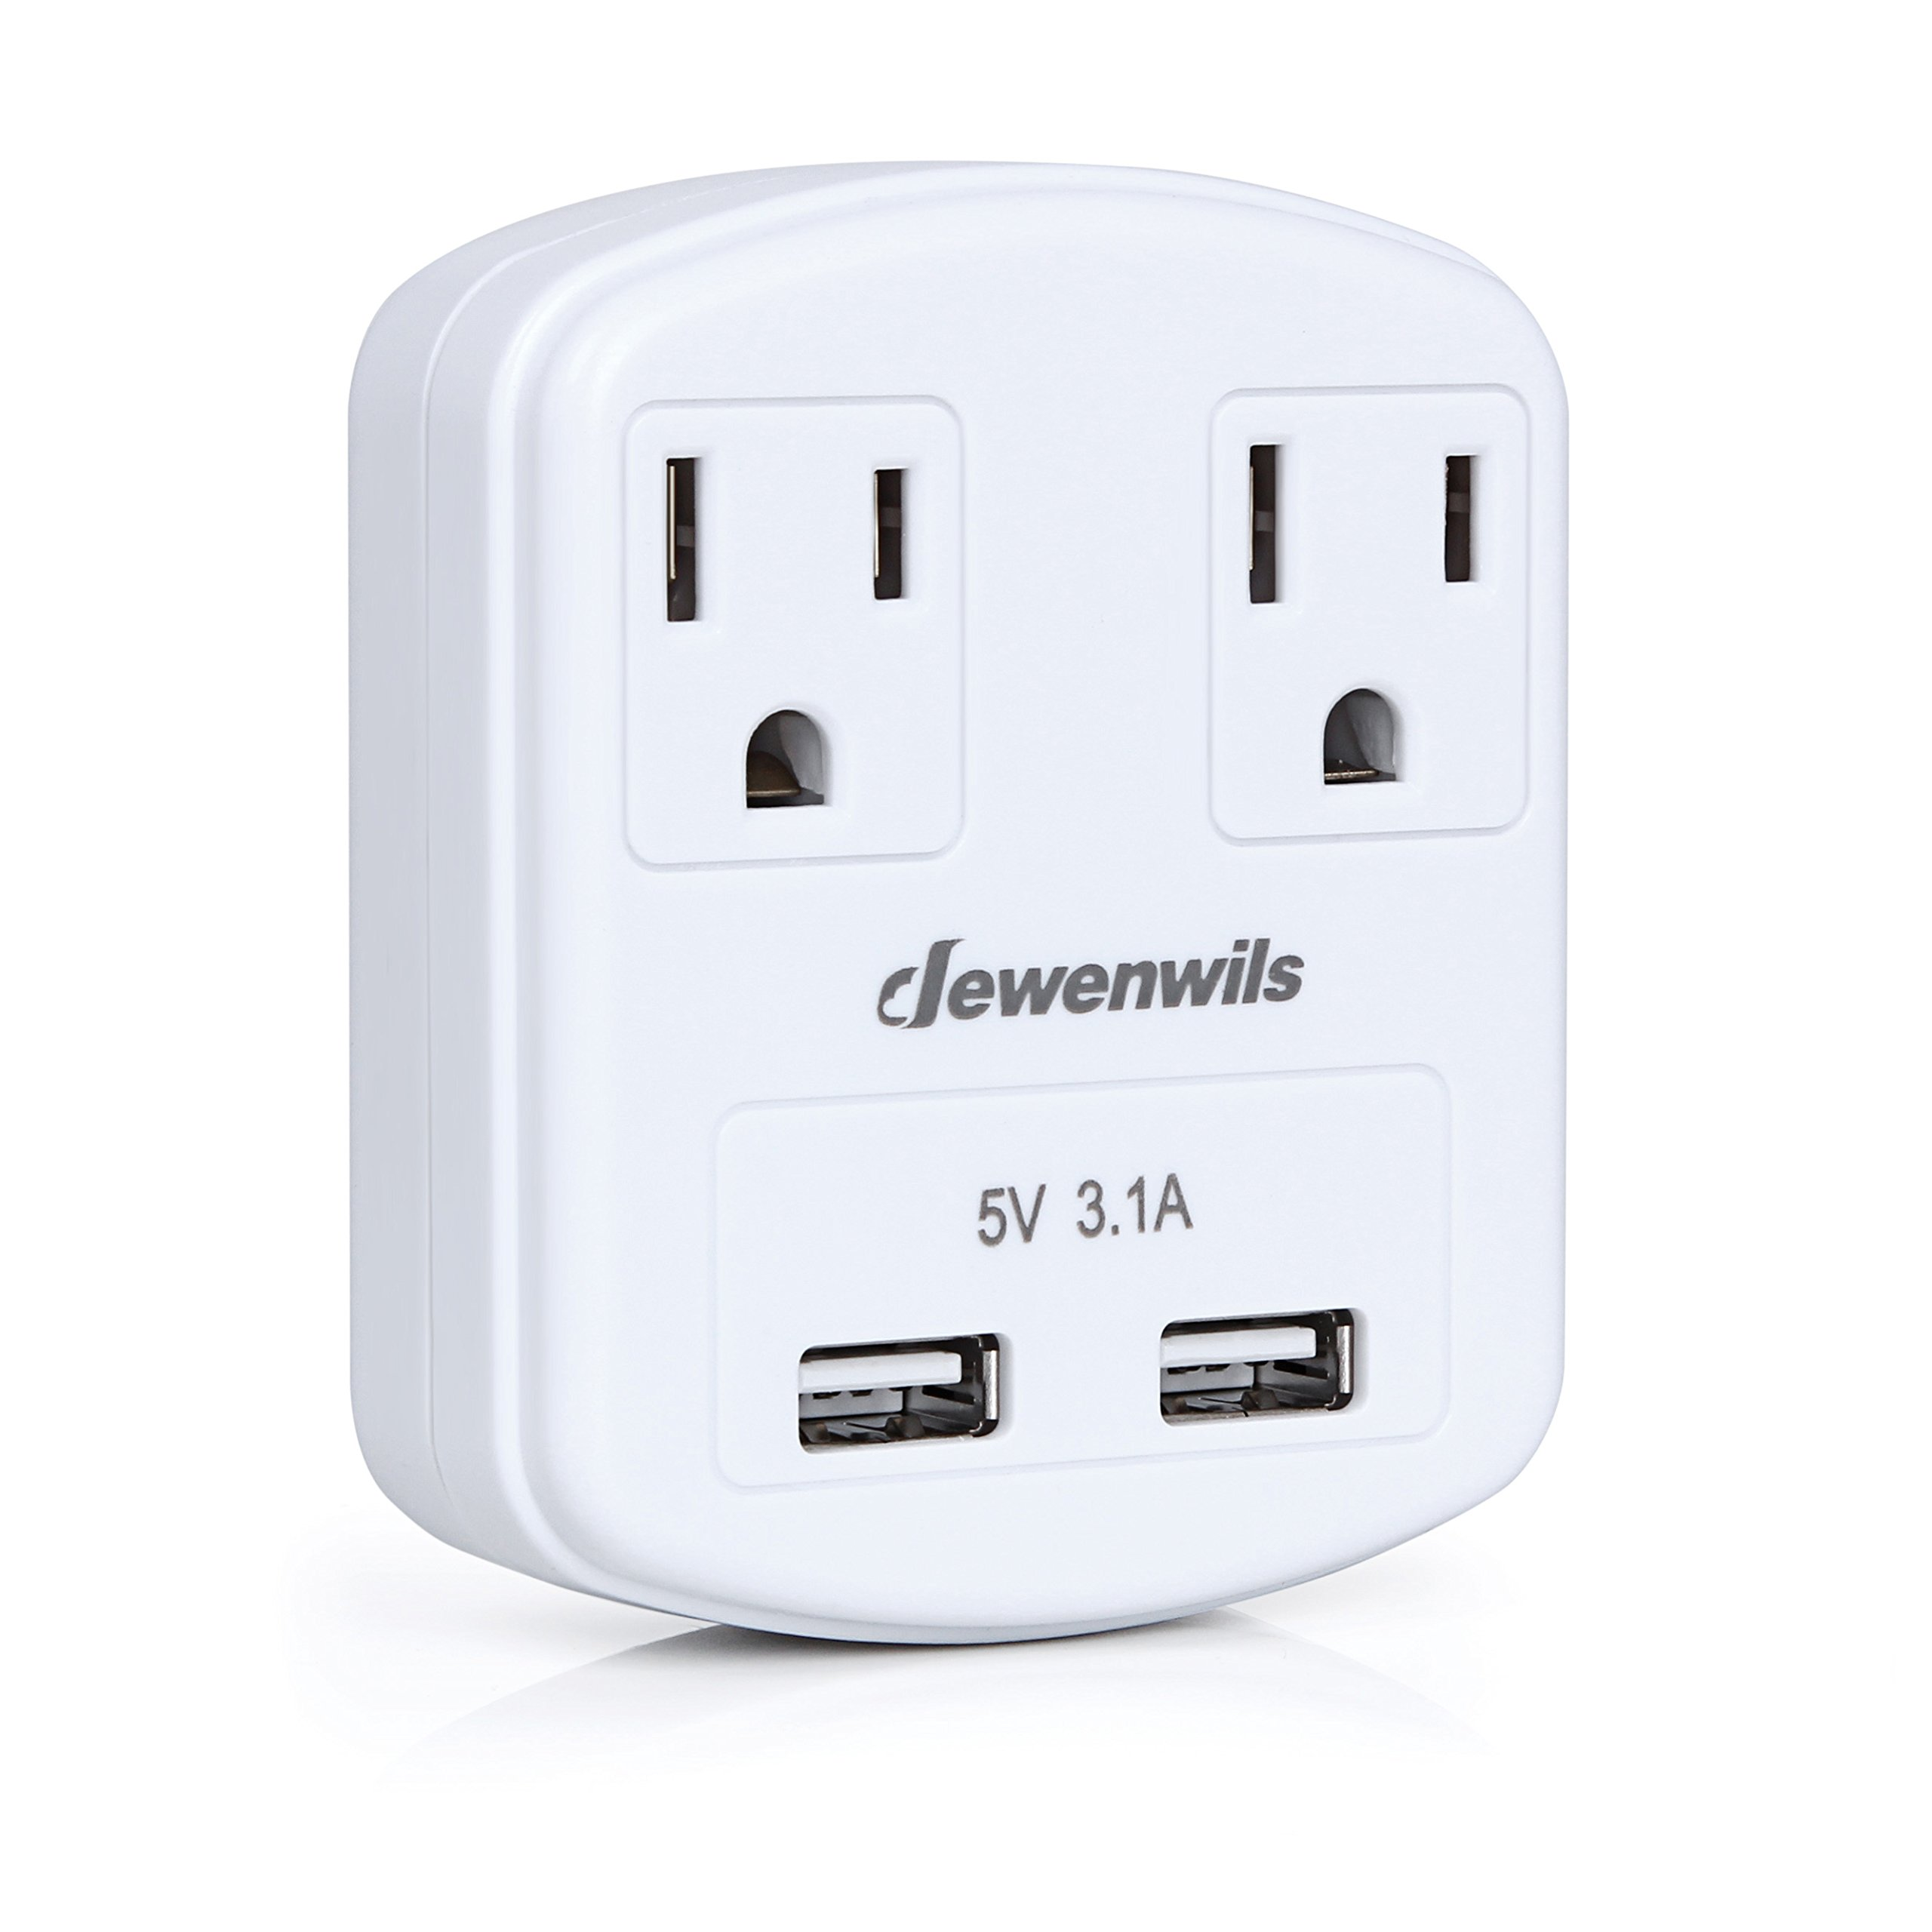 Dewenwils Multi Outlet Plug with 2 USB Ports (3.1A Total), Small Power Strip USB Charger for Cruise Ship/Hotel / Dormitory, Compatible with GFCI, ETL Listed, White